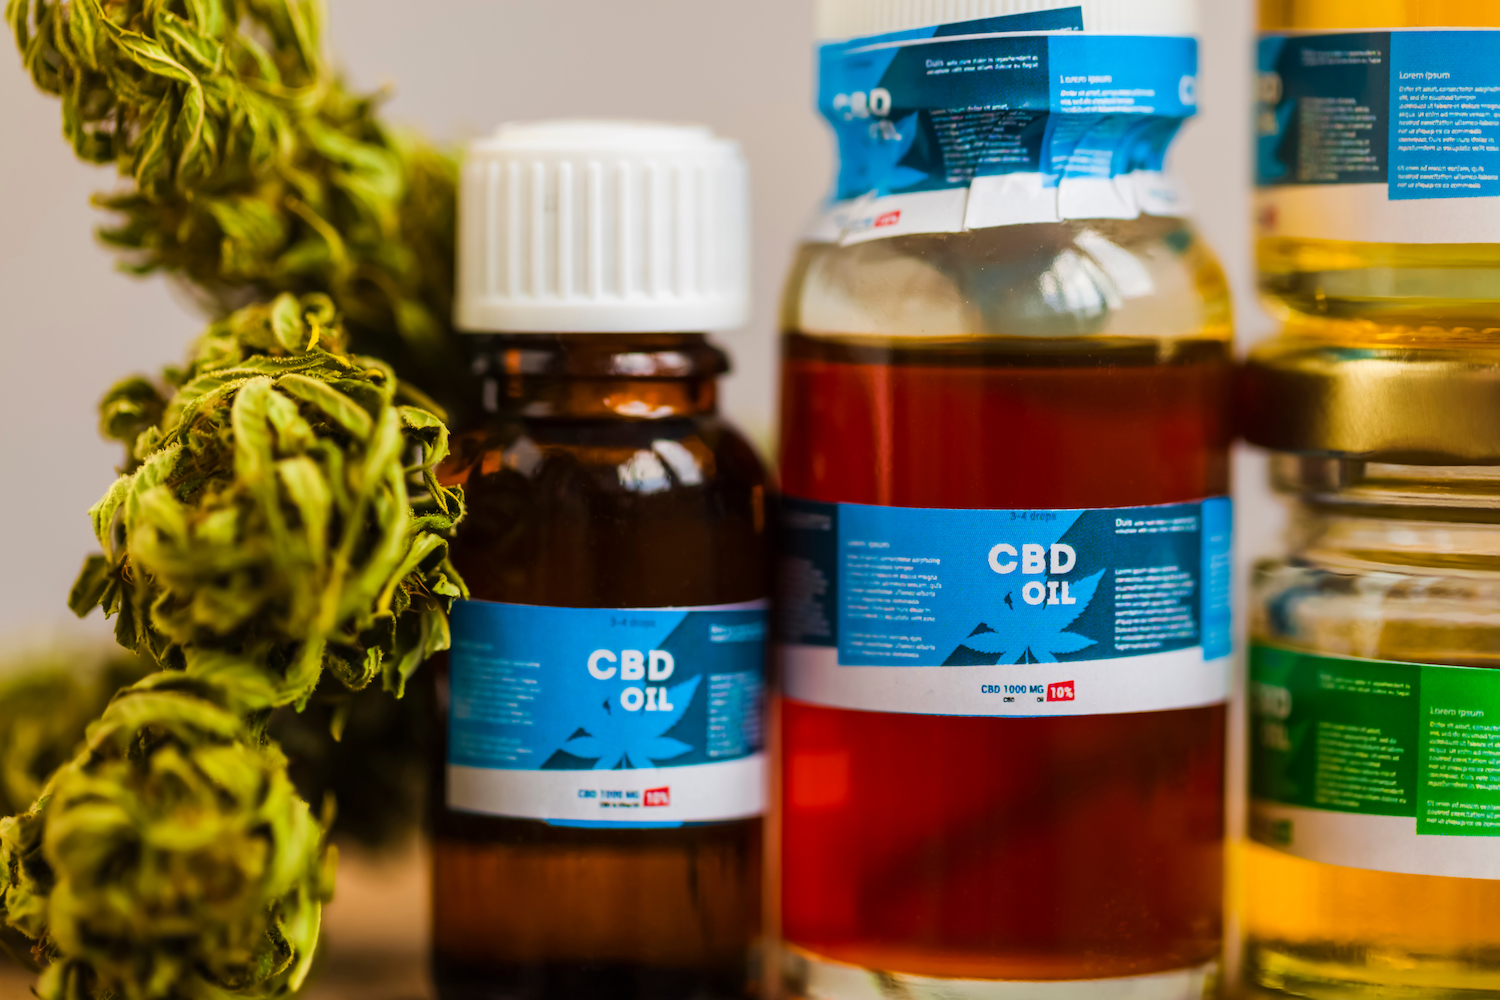 CBD and CBD Oil: What Is It and Does It Really Work? | Live